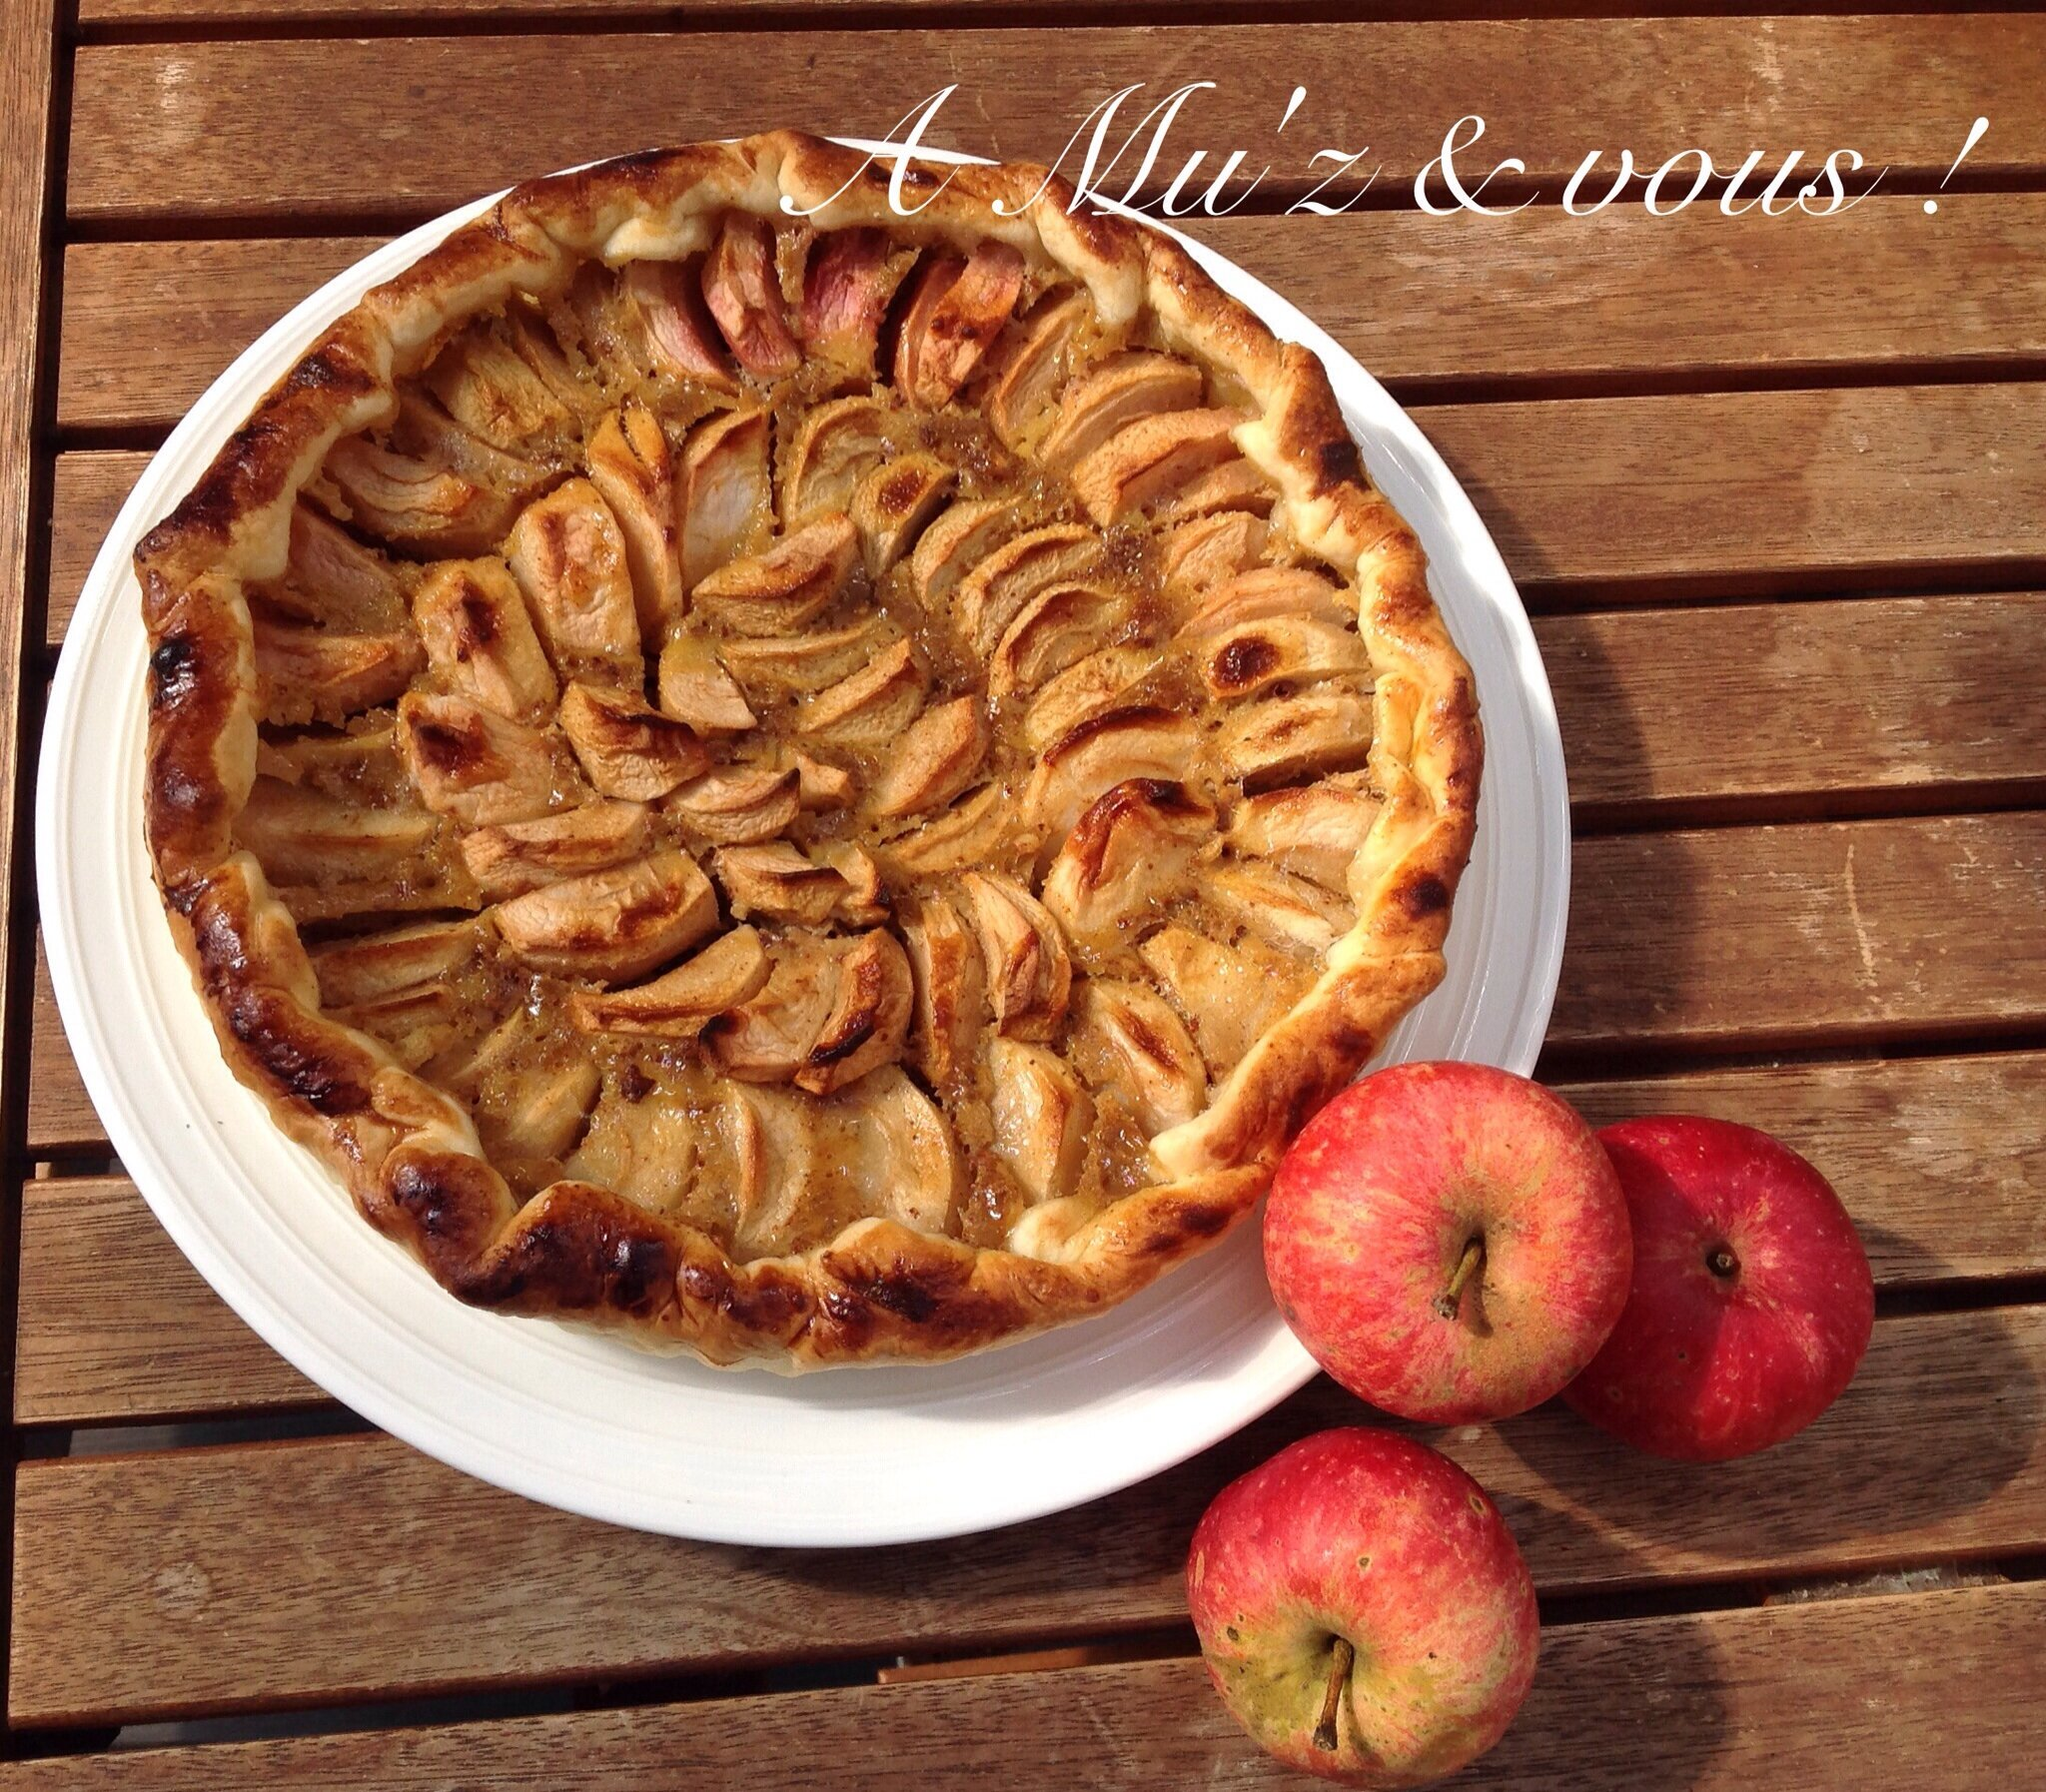 Nancy 's Apple pie